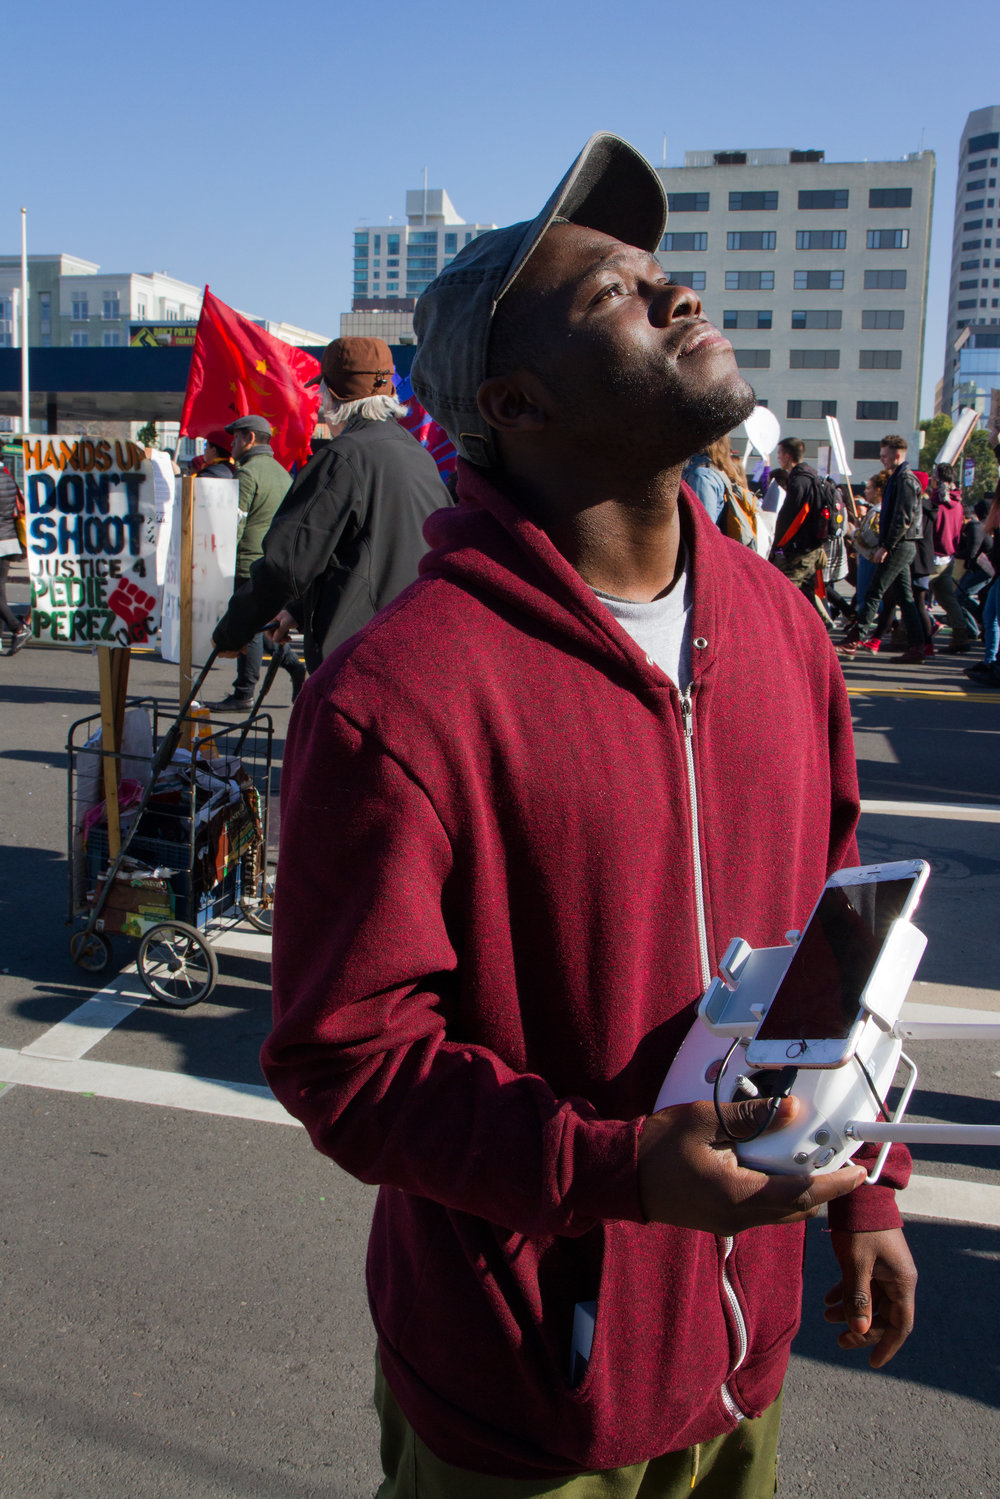 March to Reclaim King's Radical Legacy, Oakland